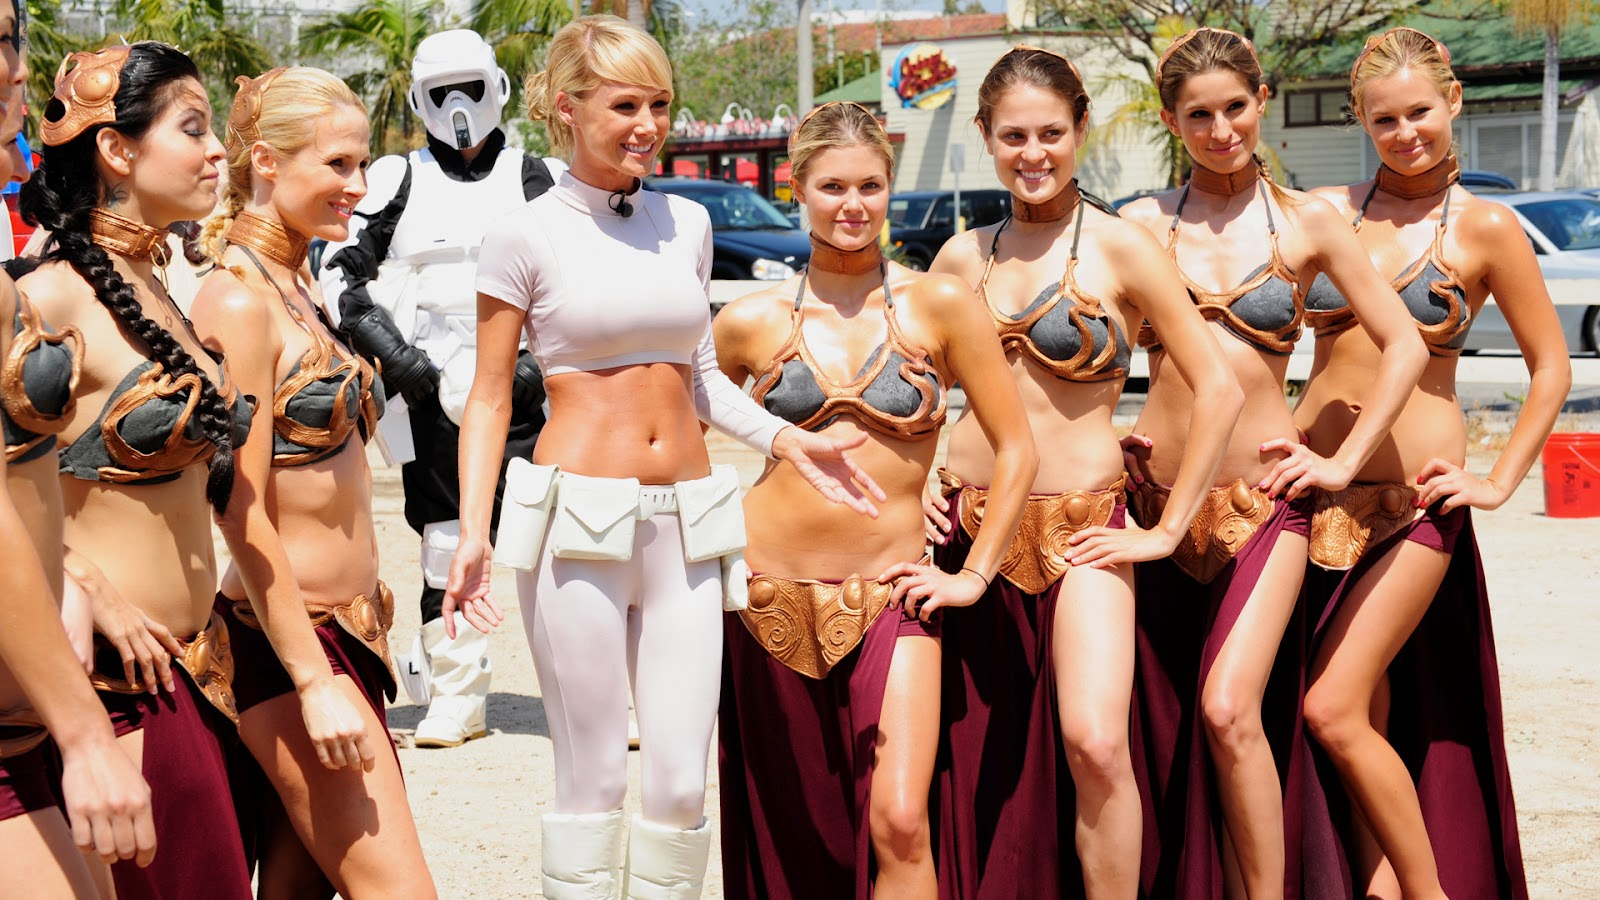 Star wars cosplay porn videos sex picture